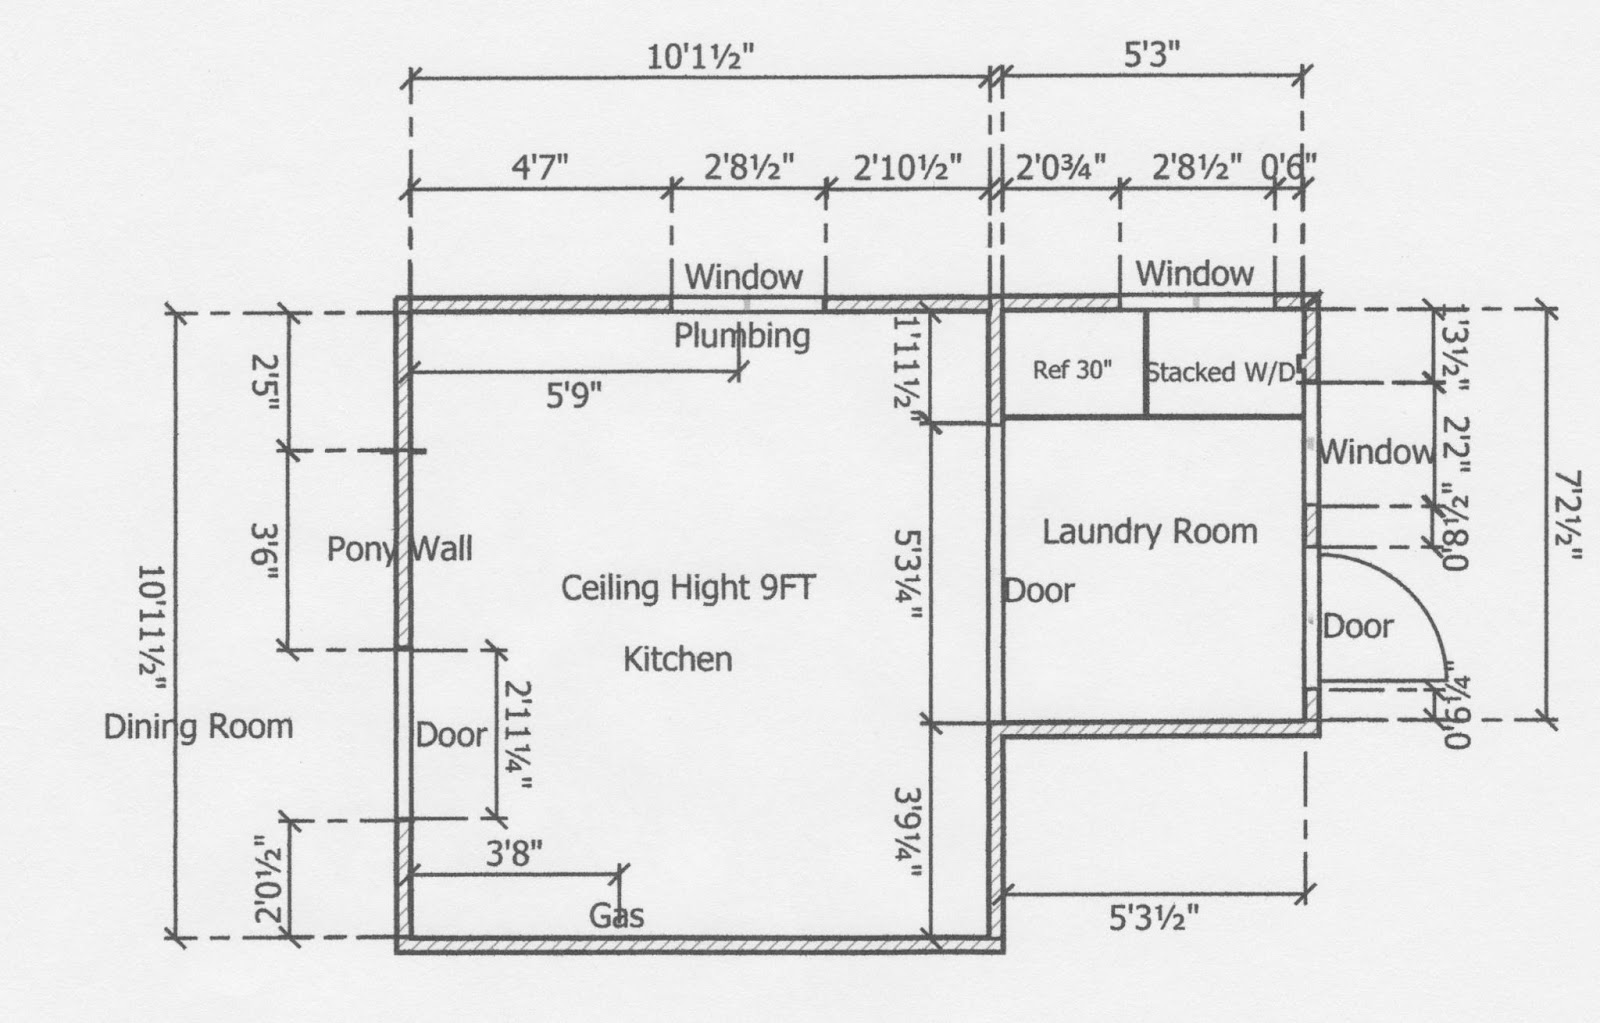 how to save thousands on an ikeatype kitchen march kitchen design planner   Kitchen Cabinet Design. Furniture Design Tool Free   SNSM155 com